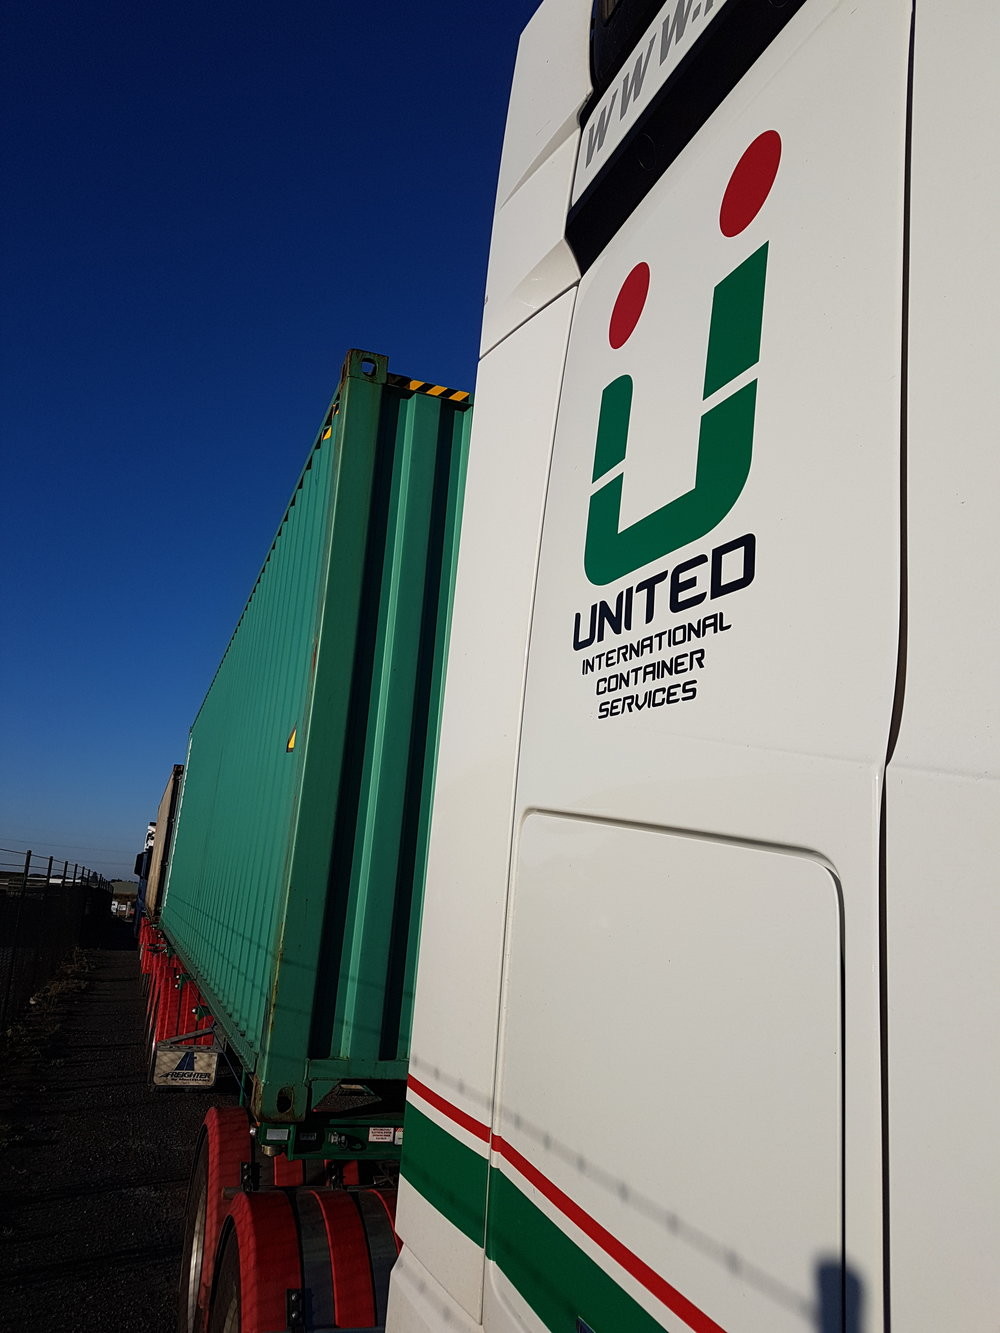 UCIS is an accredited Import / Export facility based in Mt. Gambier, South Australia